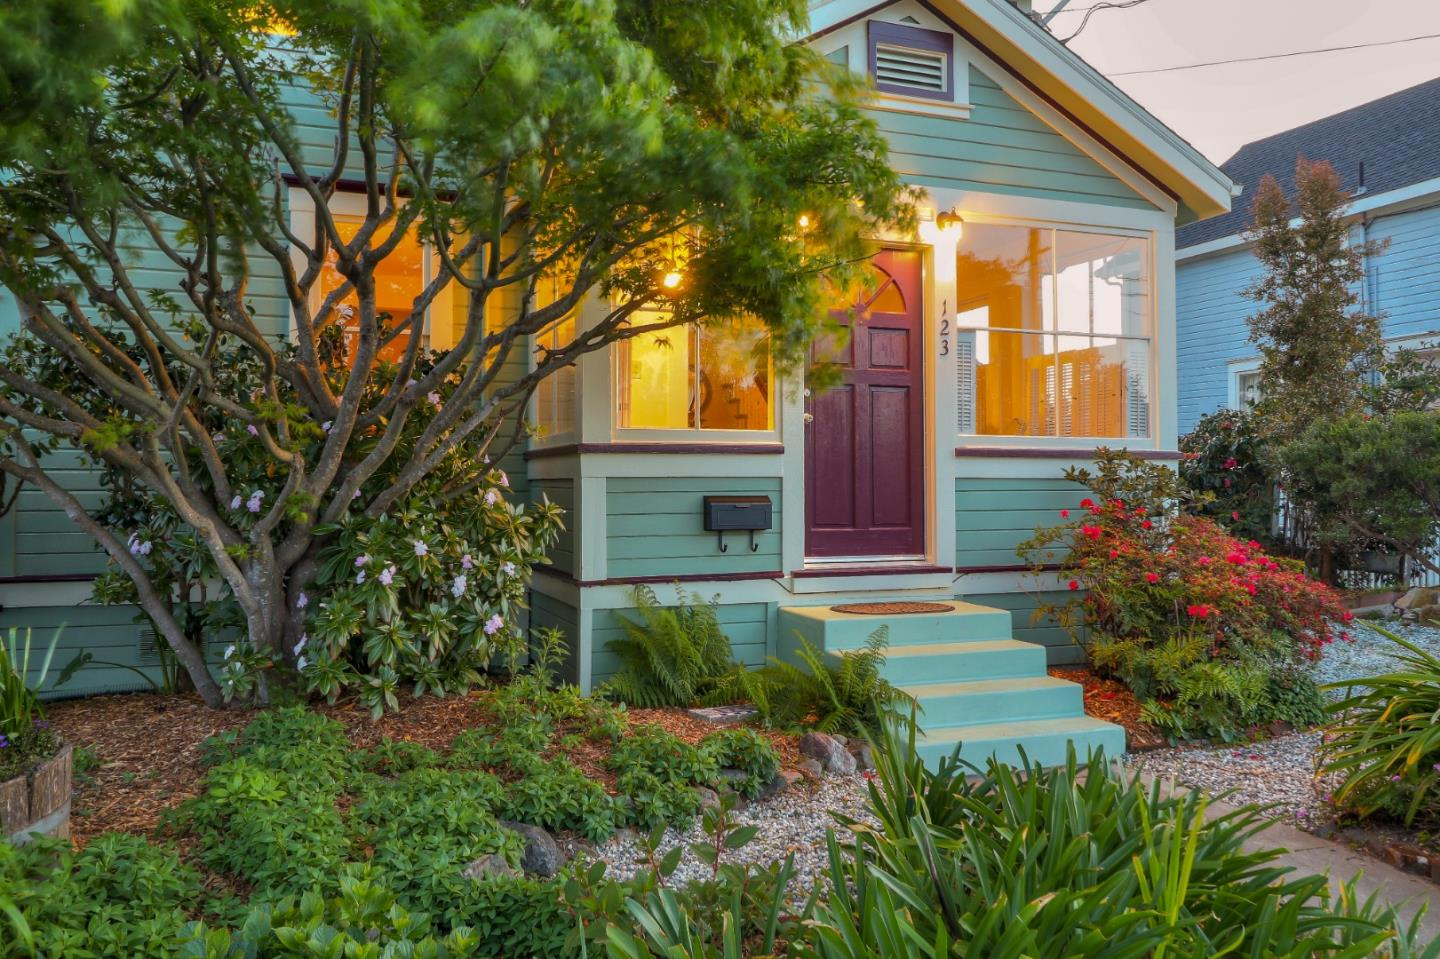 This charming Victorian home in West Side Santa Cruz offers character, vintage details, and unique garden spaces with year-round blooms. The ground floor includes a well-lit living room, dining area, fully equipped kitchen, and garden-view office space. Upstairs there are three spacious, light-filled bedrooms. A modern first-floor addition with separate entrance could be a master suite, in-law unit or guest quarters. There are three modern, full bathrooms, solar hot water, central forced air heating, and warming radiant floor heating in the new addition. The living room opens through French doors to a spacious side porch overlooking a peaceful garden area. The backyard features a secluded, trellis-shaded patio plus redwood deck, fruit trees, raised beds, and a large storage shed. This quiet neighborhood is close to Mission Street restaurants and West Side wine bars, breweries, and beaches.